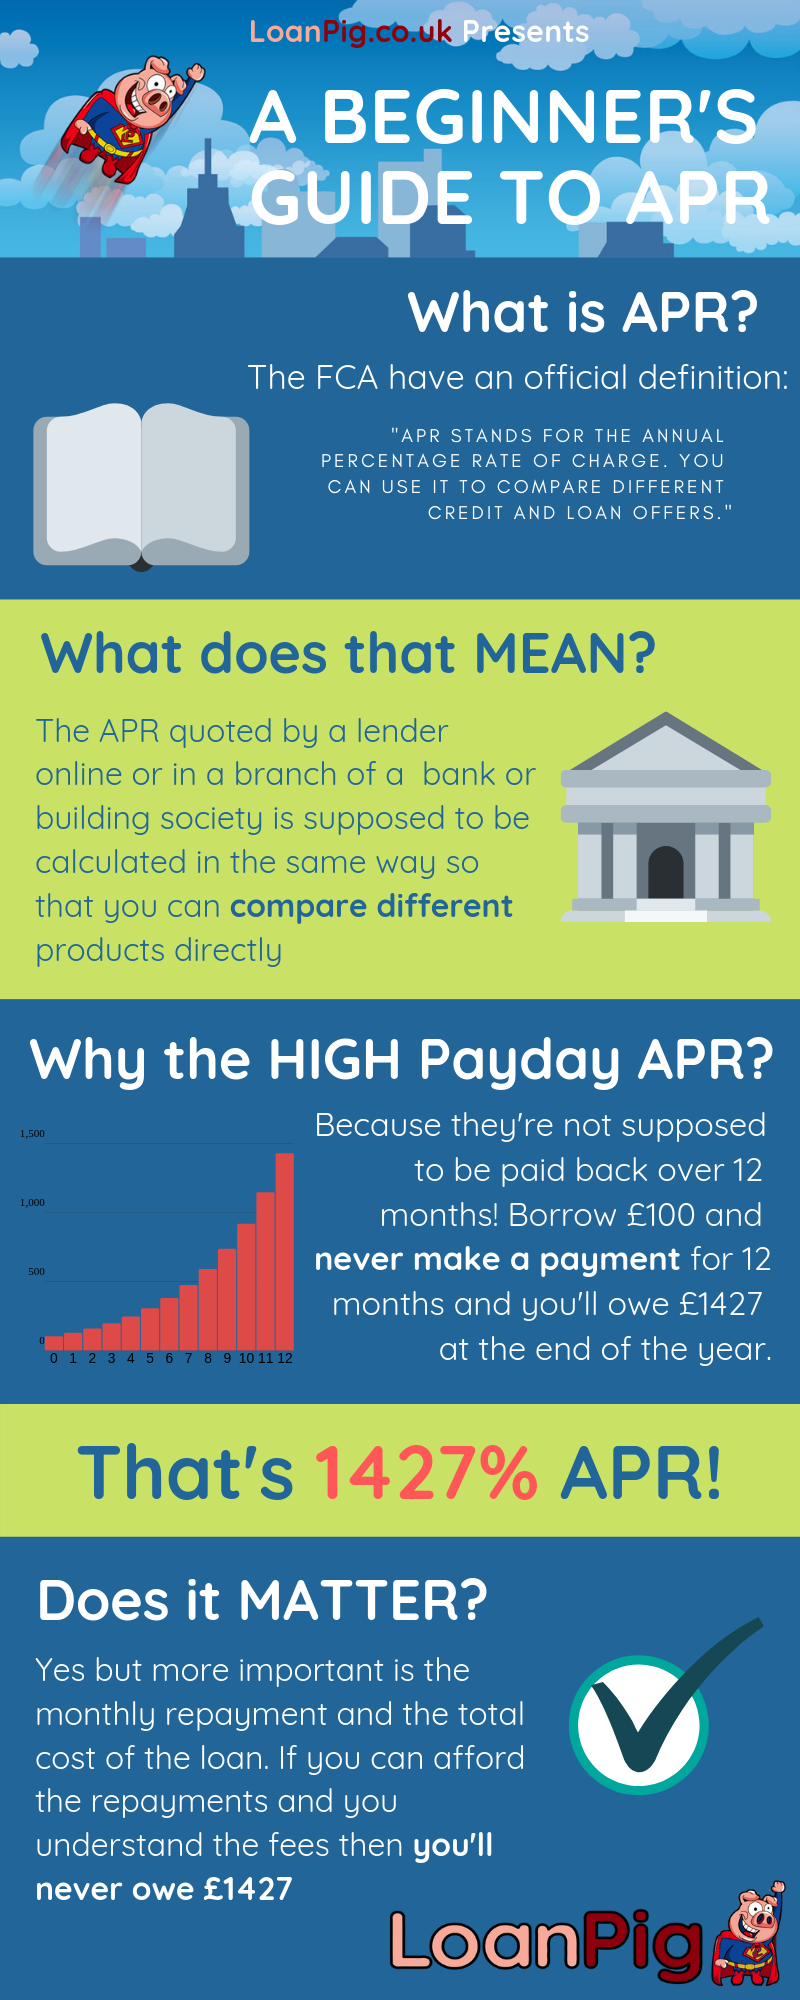 LoanPig.co.uk - A Beginners Guide To APR Infographic